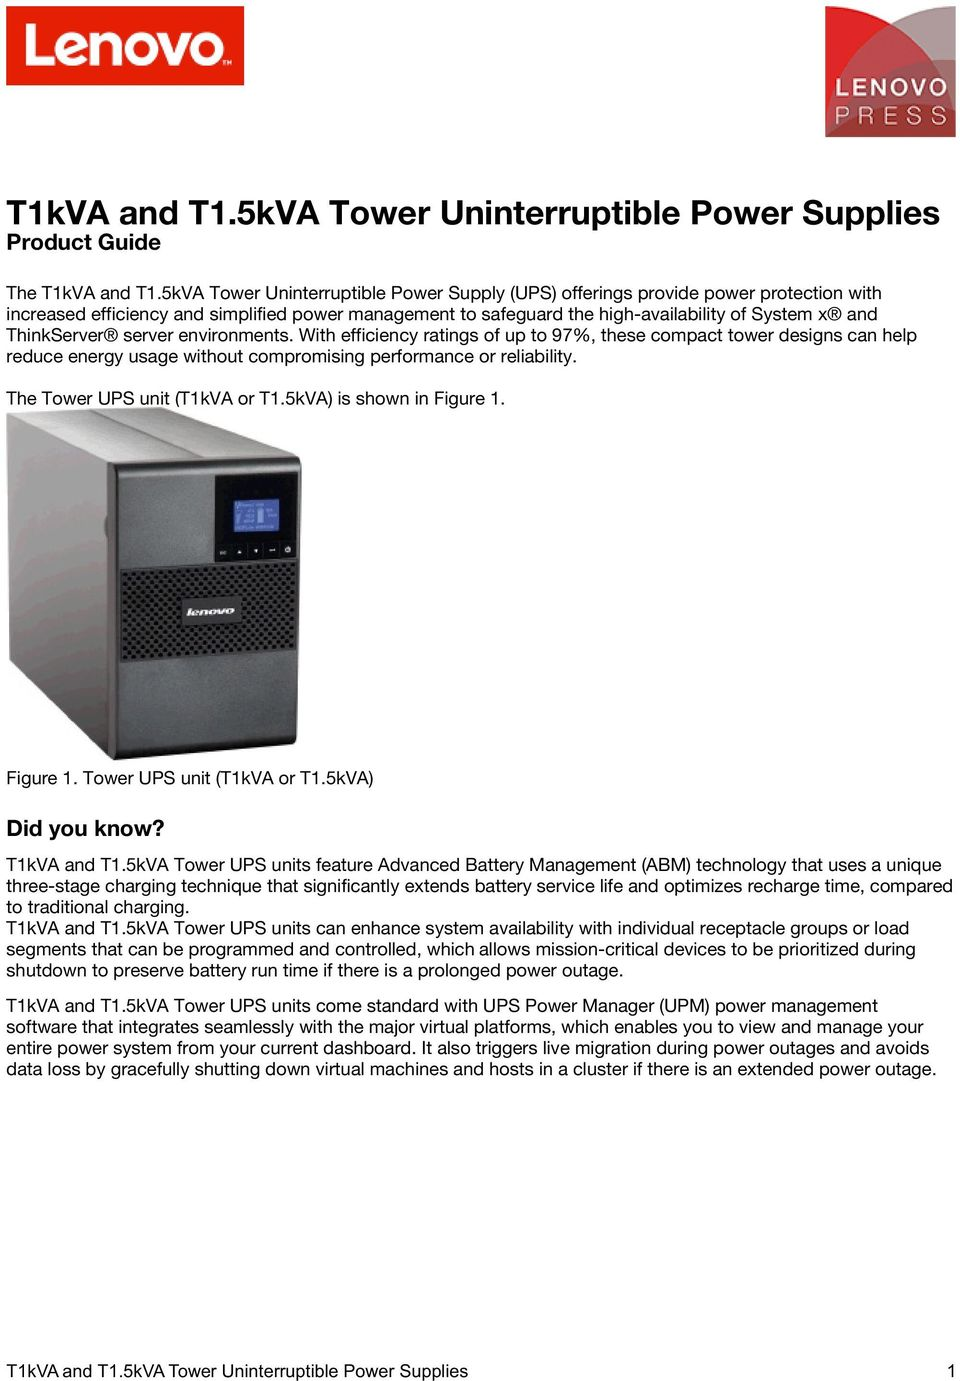 T1kVA and T1 5kVA Tower Uninterruptible Power Supplies Product Guide